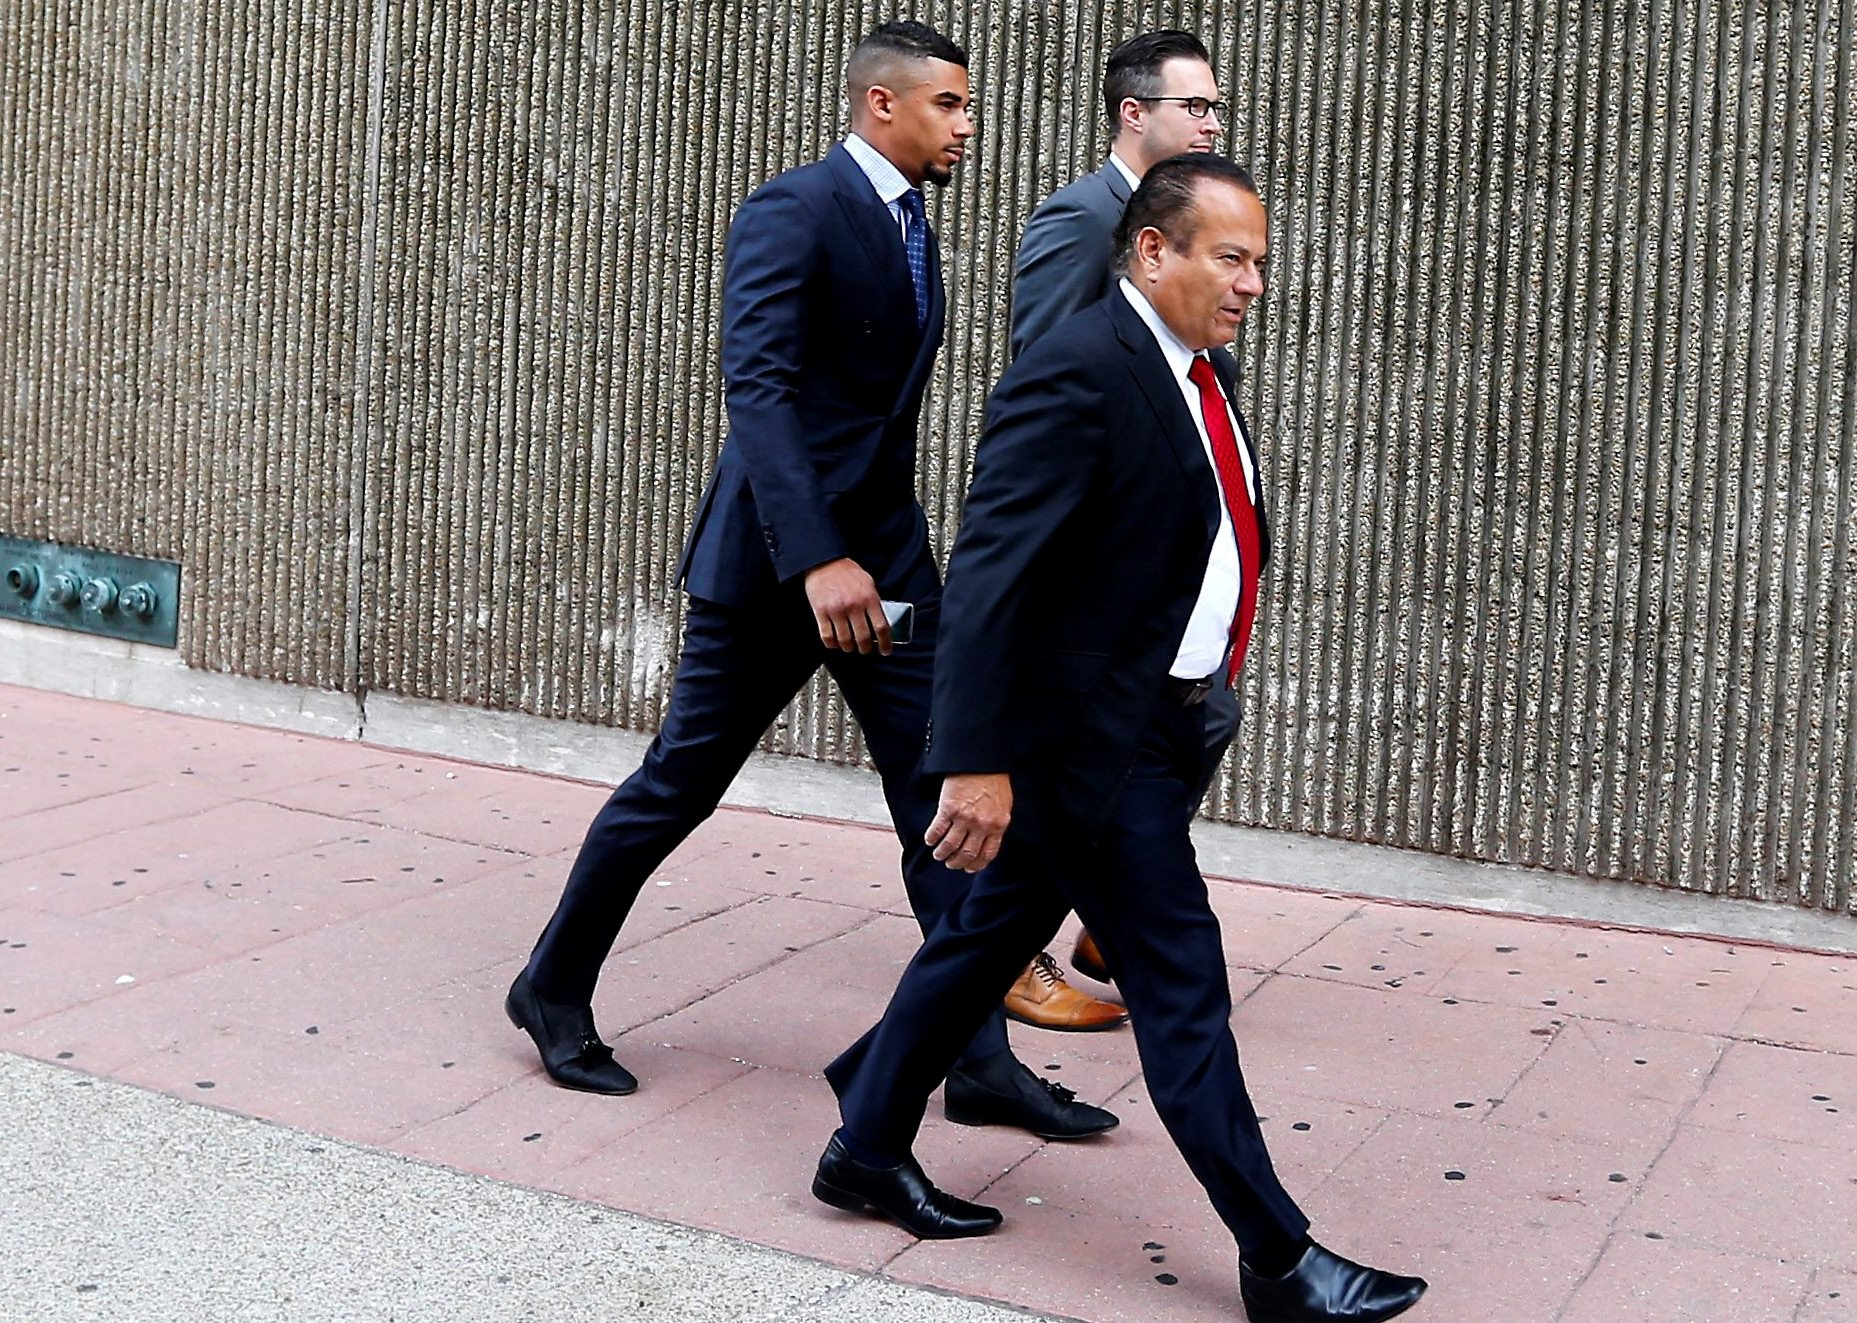 Buffalo Sabres forward Evander Kane enters city court with his attorneys on Aug. 1, 2016. (Mark Mulville/News file photo)